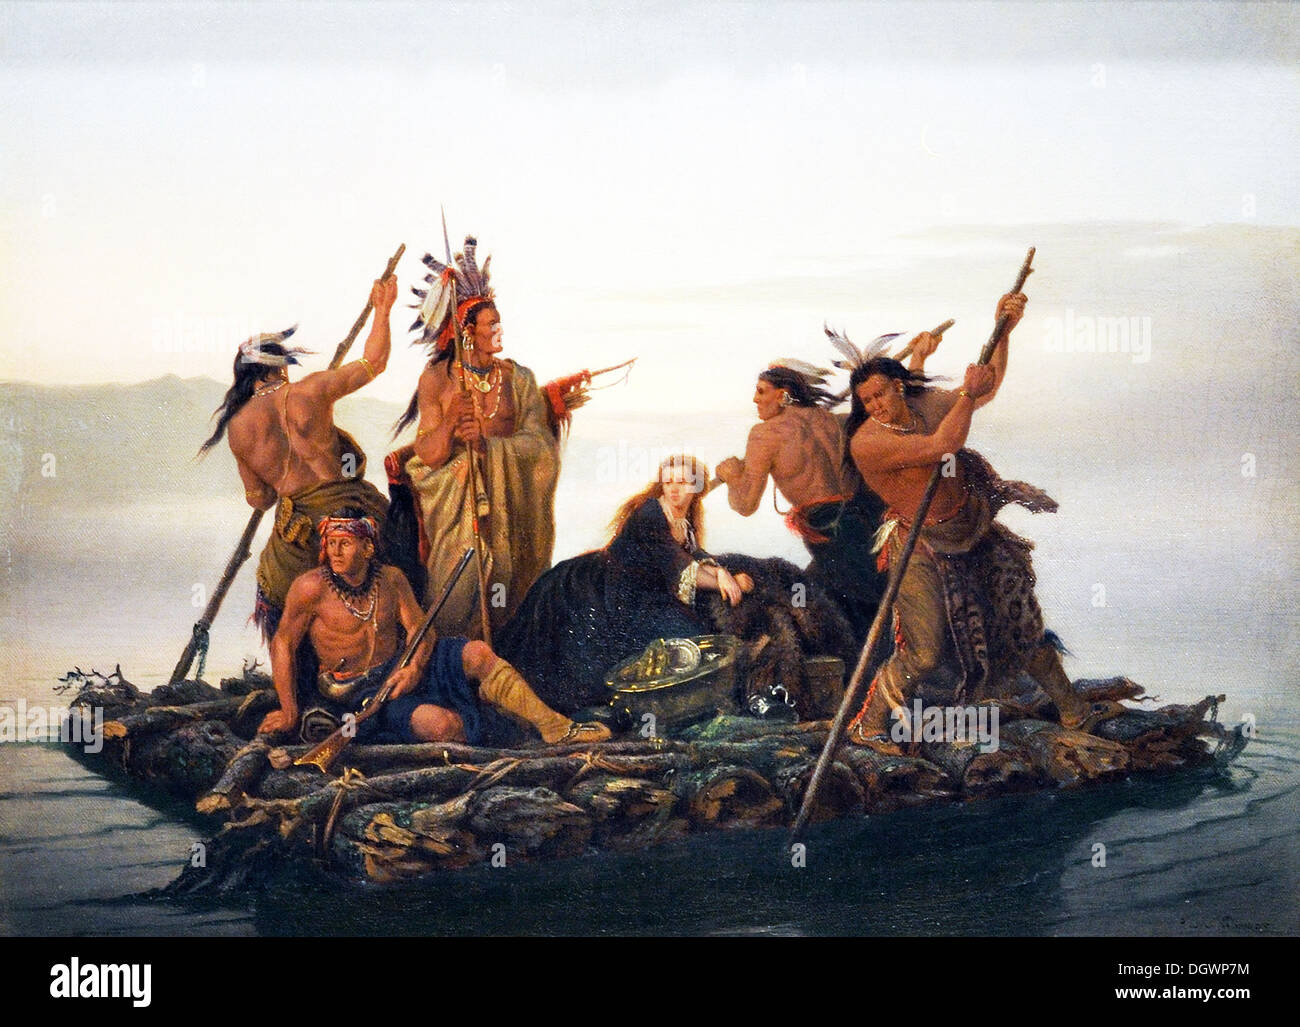 The Abduction of Daniel Boone's Daughter by the Indians  - by Charles Wimar, 1856 - Stock Image